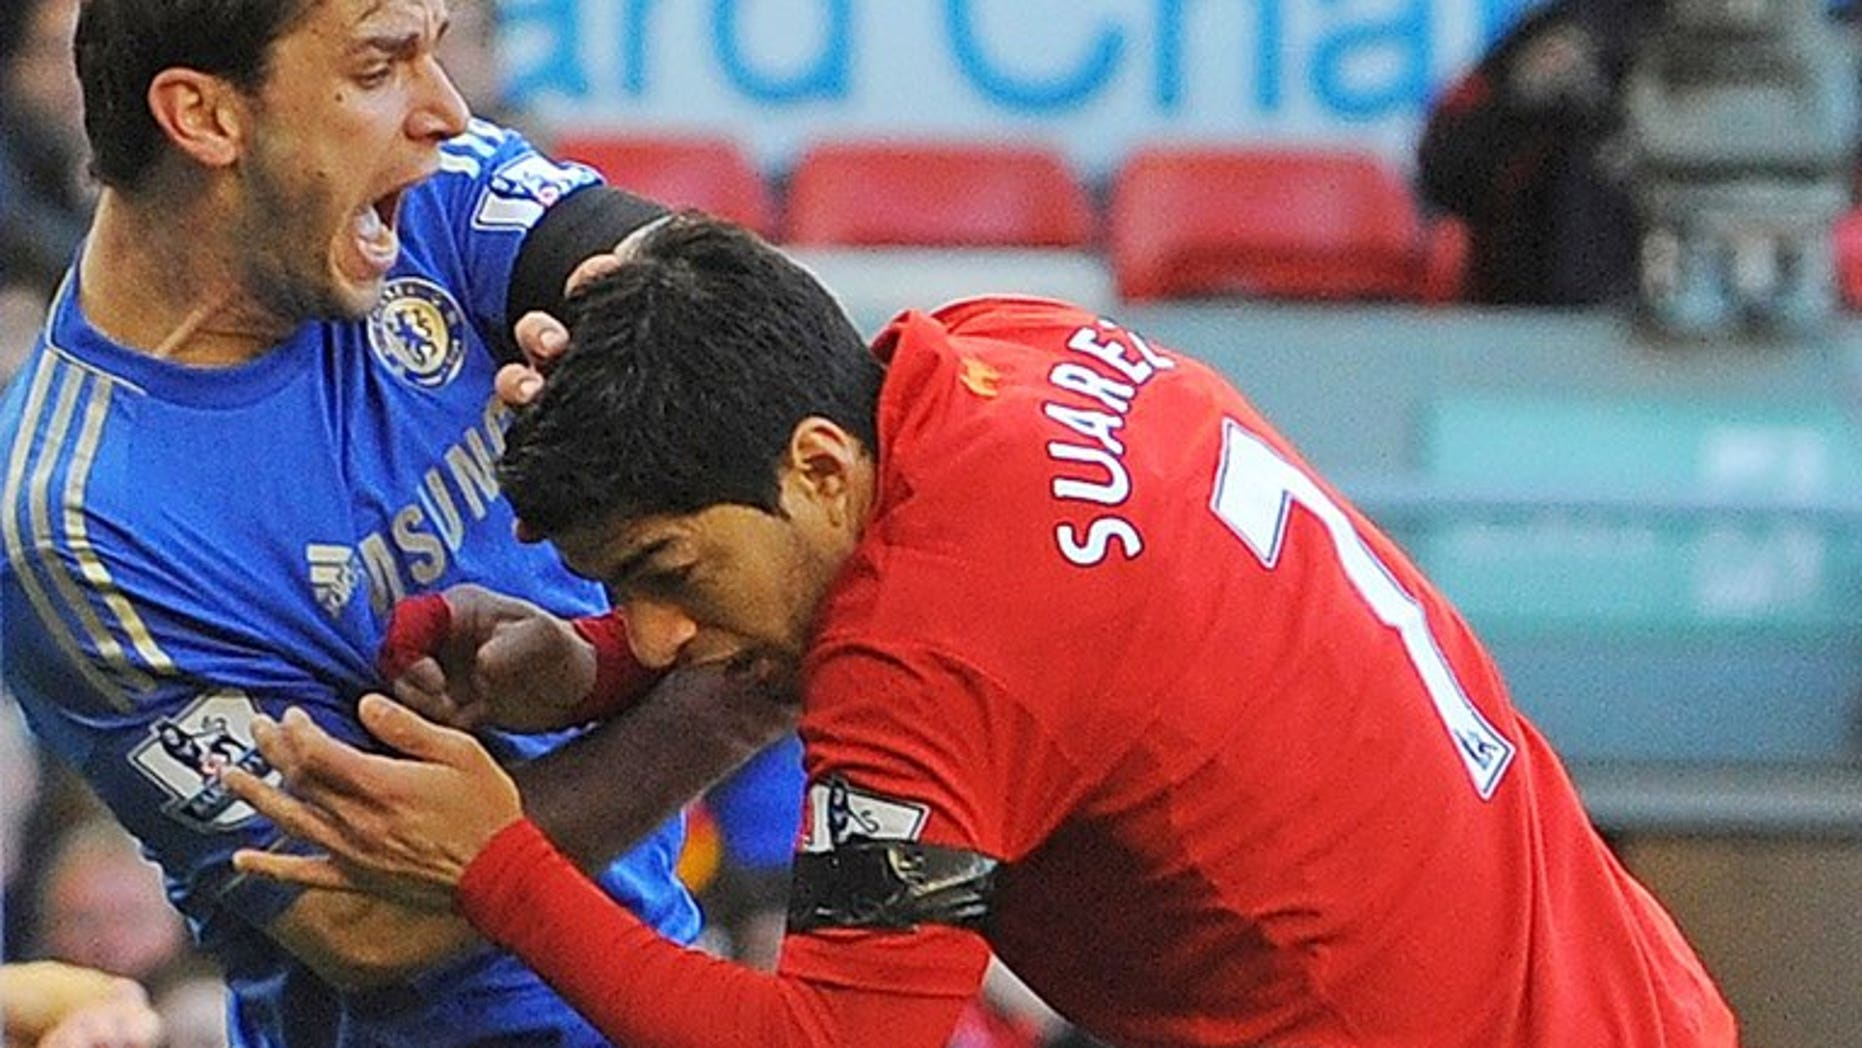 """Chelsea's Branislav Ivanovic (left) recoils after being bitten by Luis Suarez at Stamford Bridge on April 21. Arsenal manager Arsene Wenger has conceded defeat in his pursuit of Suarez after declaring there is """"no chance"""" Liverpool's Uruguayan striker will move to the Emirates Stadium."""